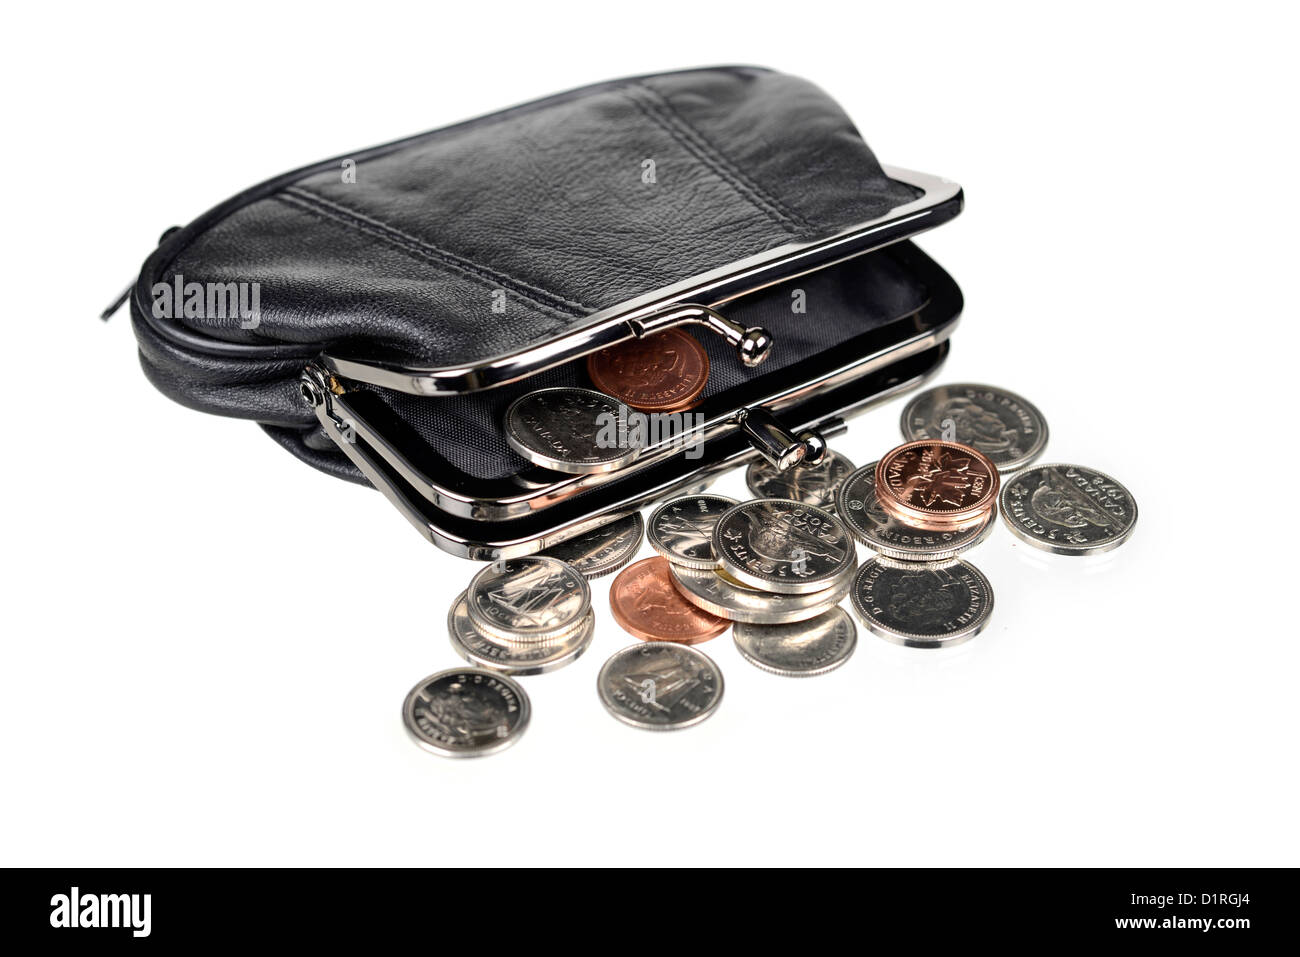 Purse with Coins, Canadian money. - Stock Image